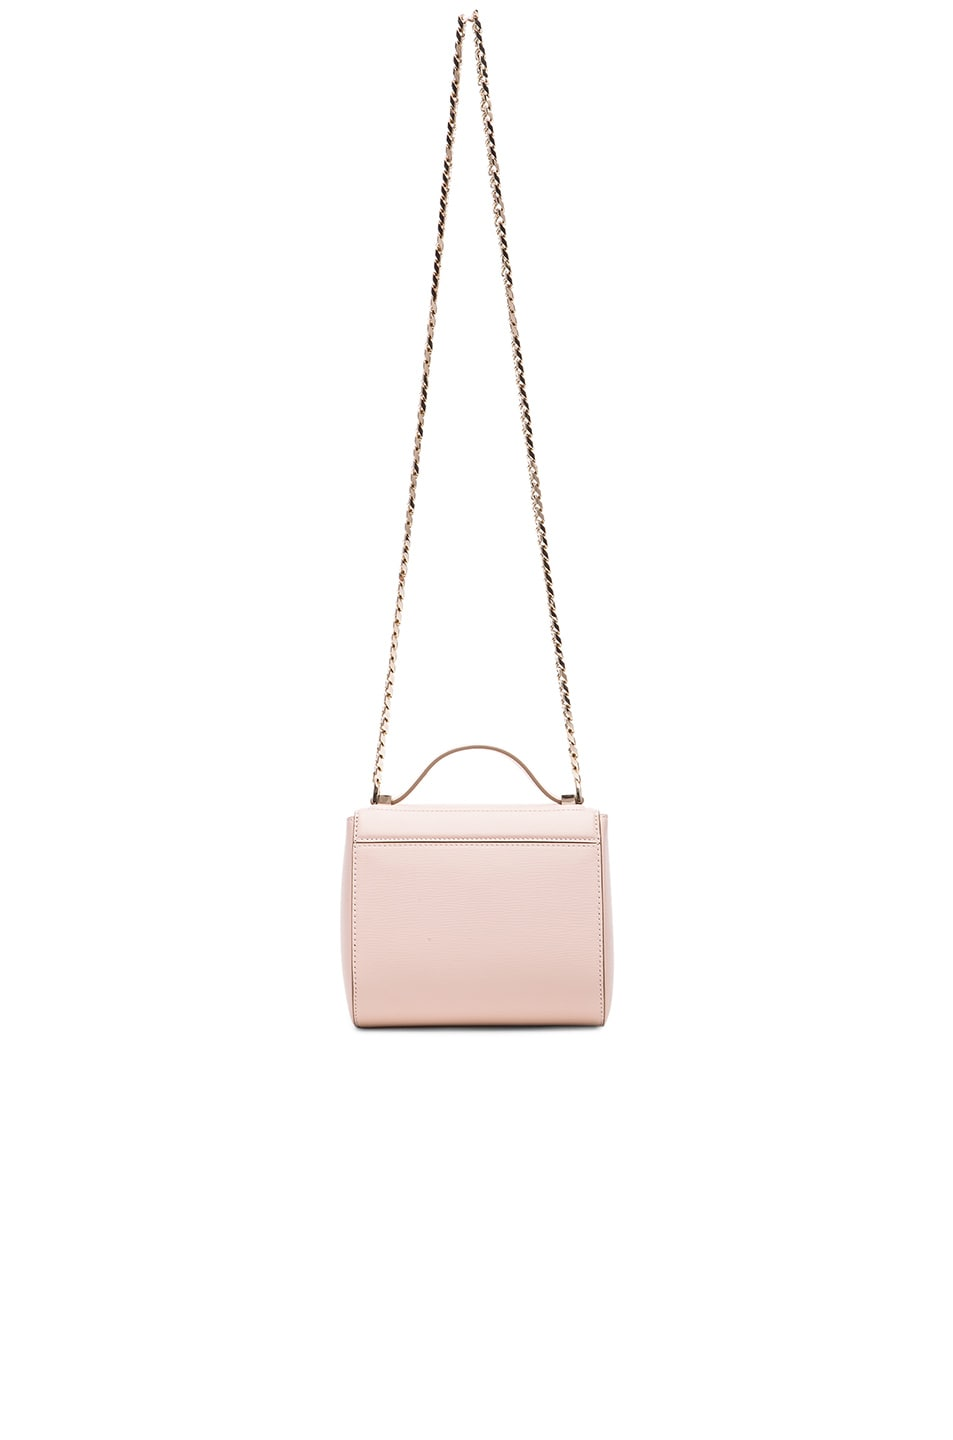 69625b3fe7ff Image 3 of Givenchy Mini Chain Pandora Box in Nude